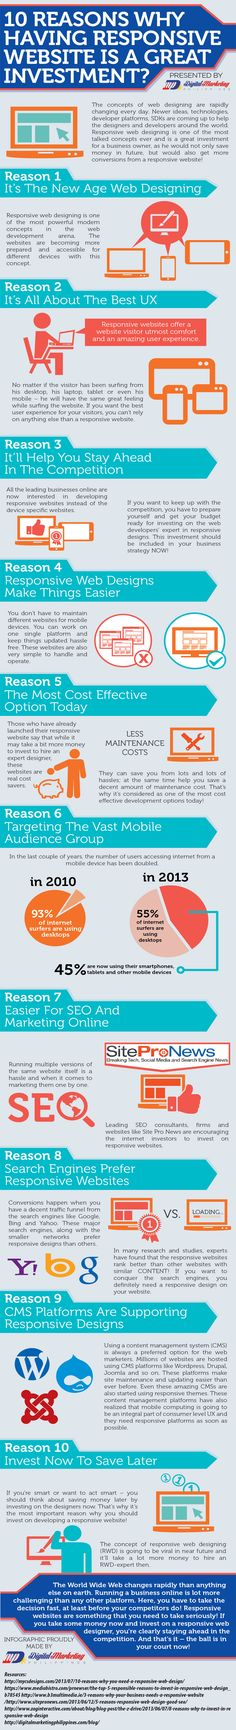 10 Reasons Why Having Responsive Website Is a Great Investment? (Infographic)